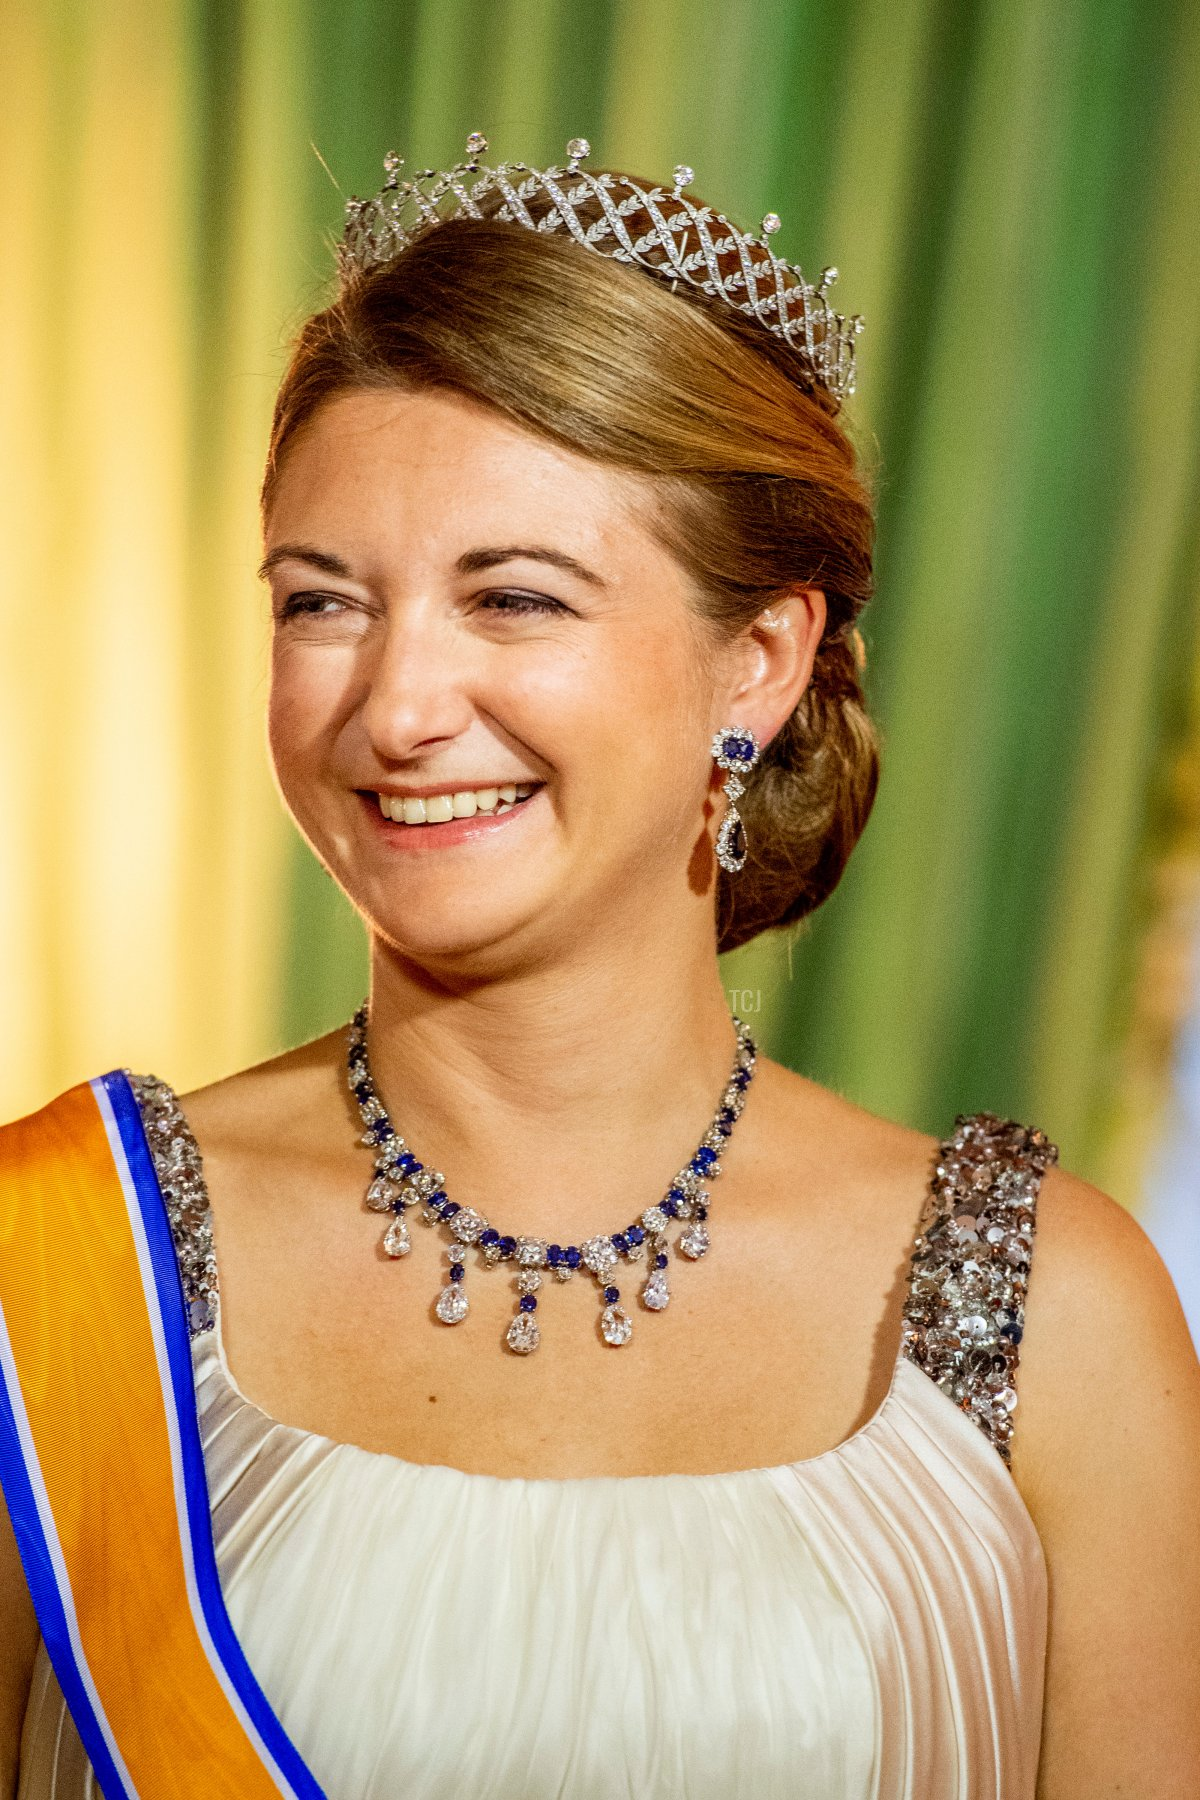 Hereditary Grand Duchess Stephanie during the official state banquet at the Grand Ducal Palace in Luxembourg, 23 May 2018. The Dutch King and Queen are in Luxembourg for an three day state visit